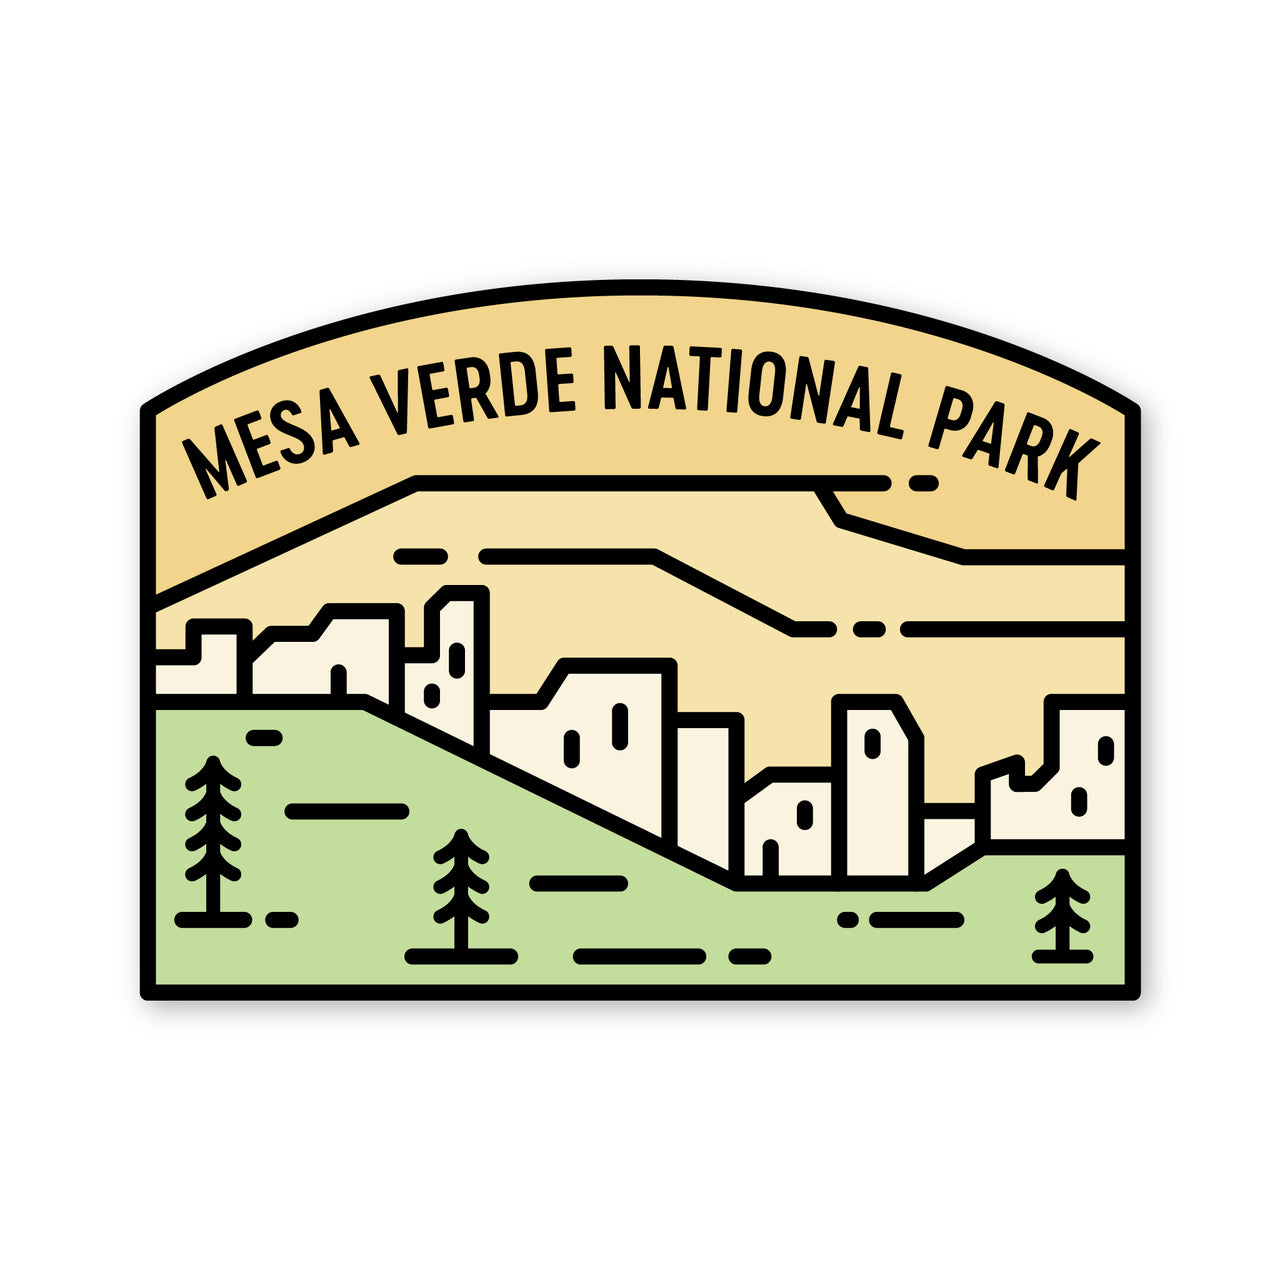 Mesa Verde National Park Sticker